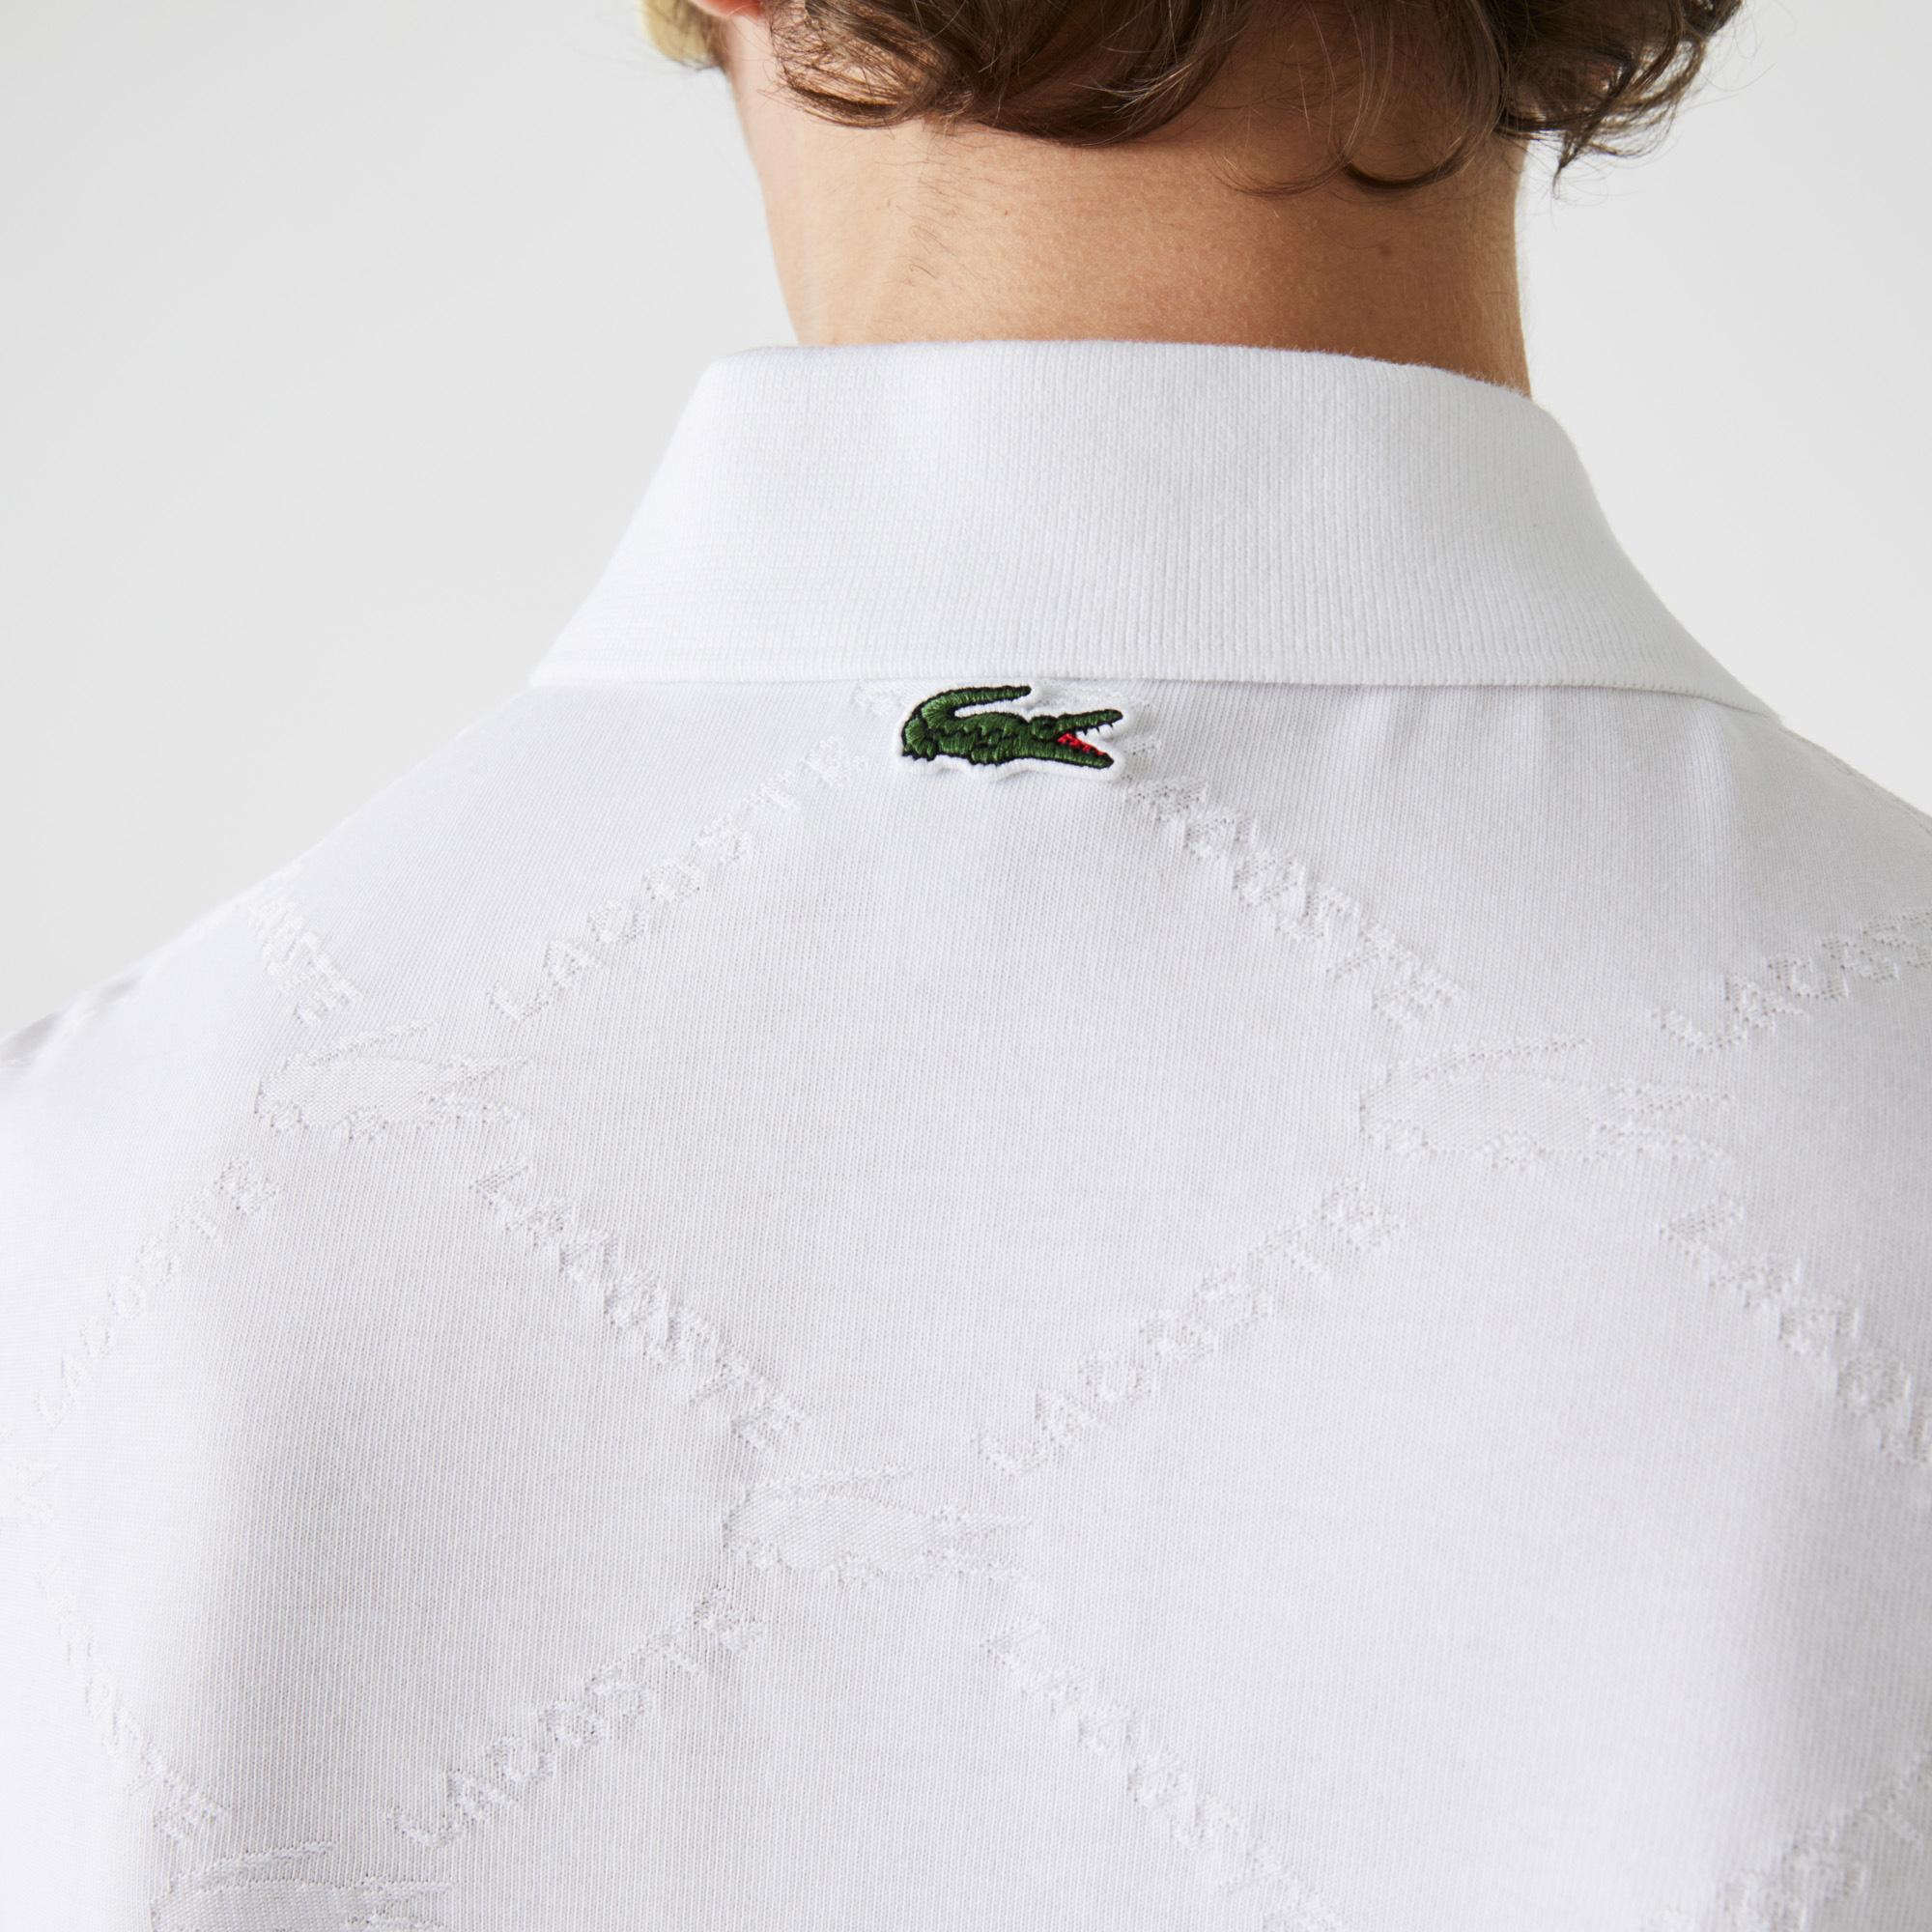 Lacoste Men's Lacoste LIVE Standard Fit Monogram Patterned Polo Shirt